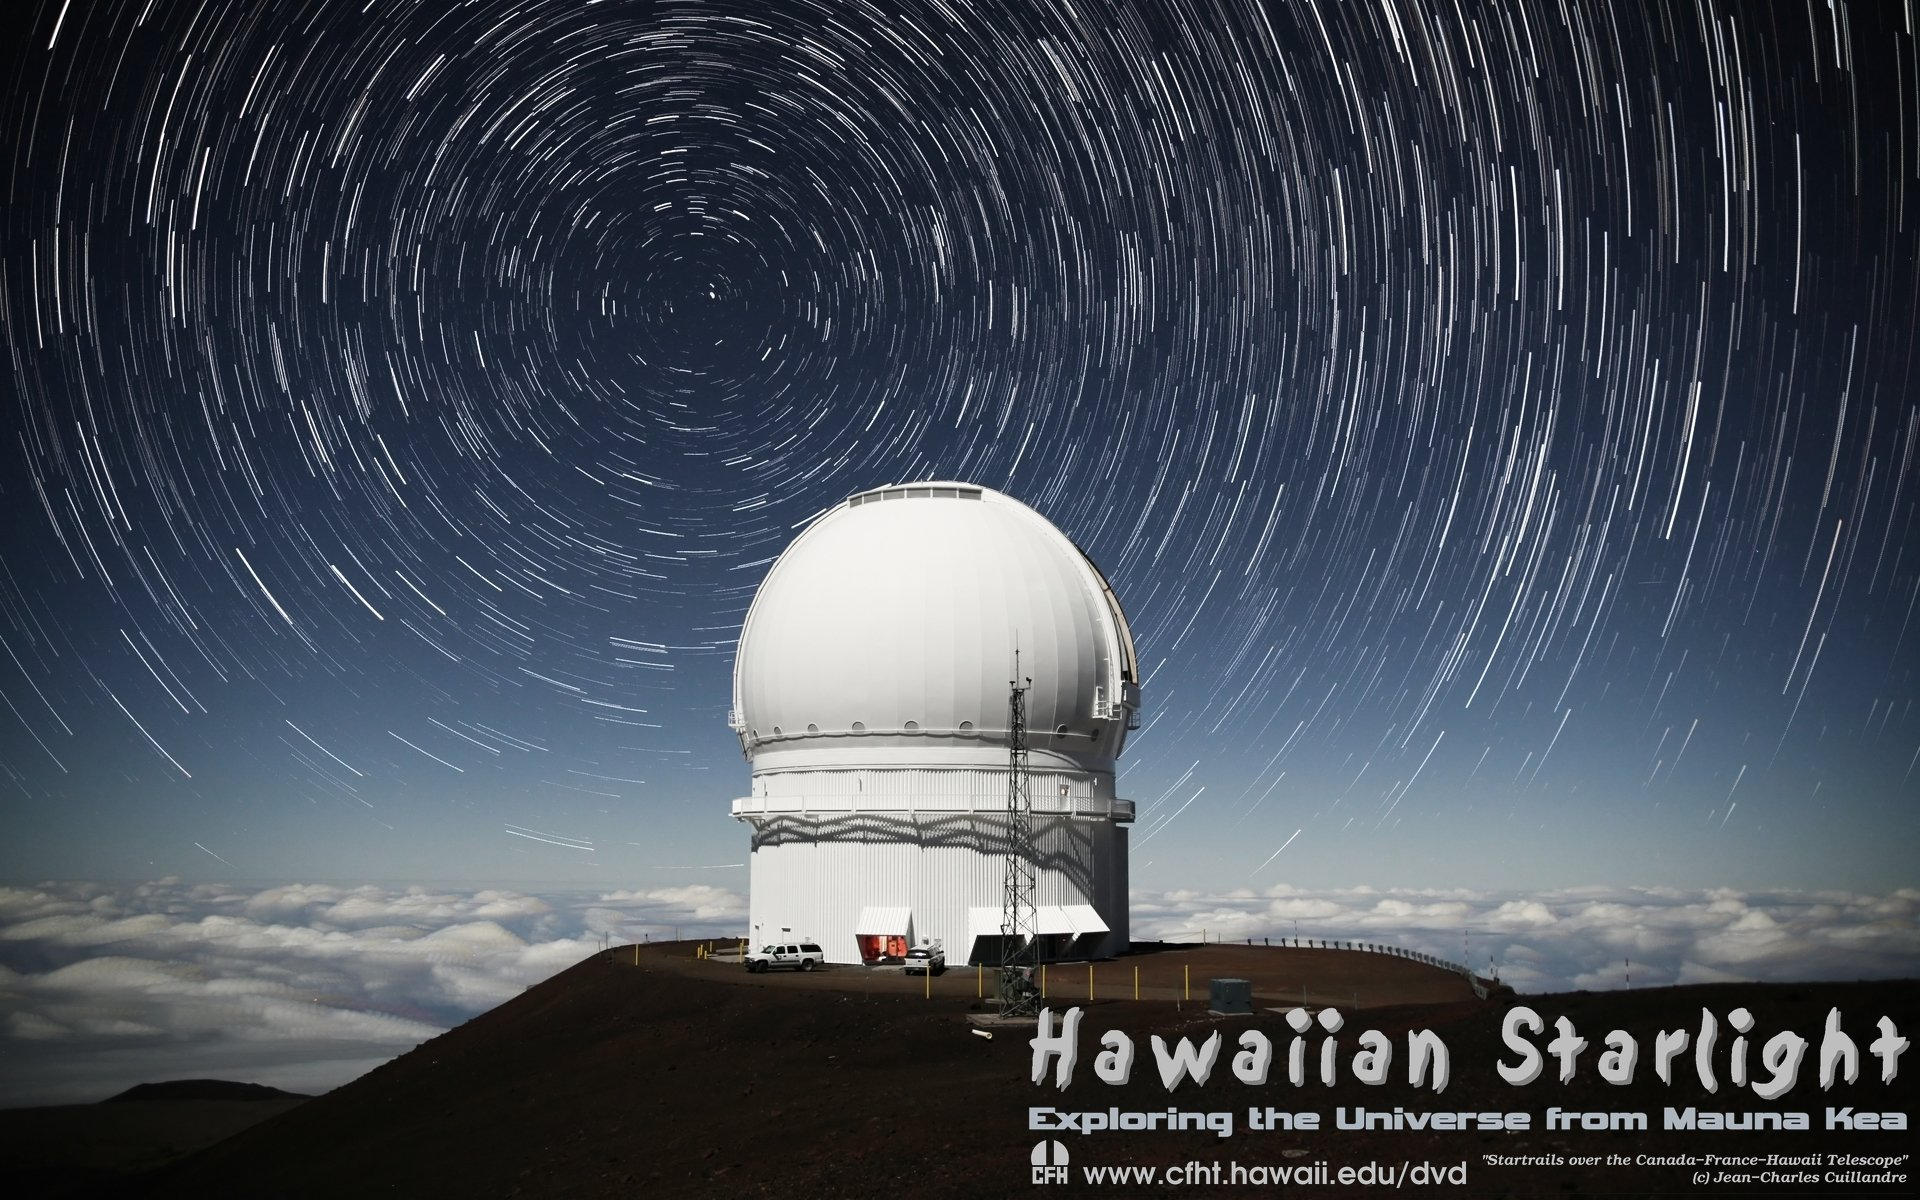 hawaiian starlight film - exploring the universe from mauna kea